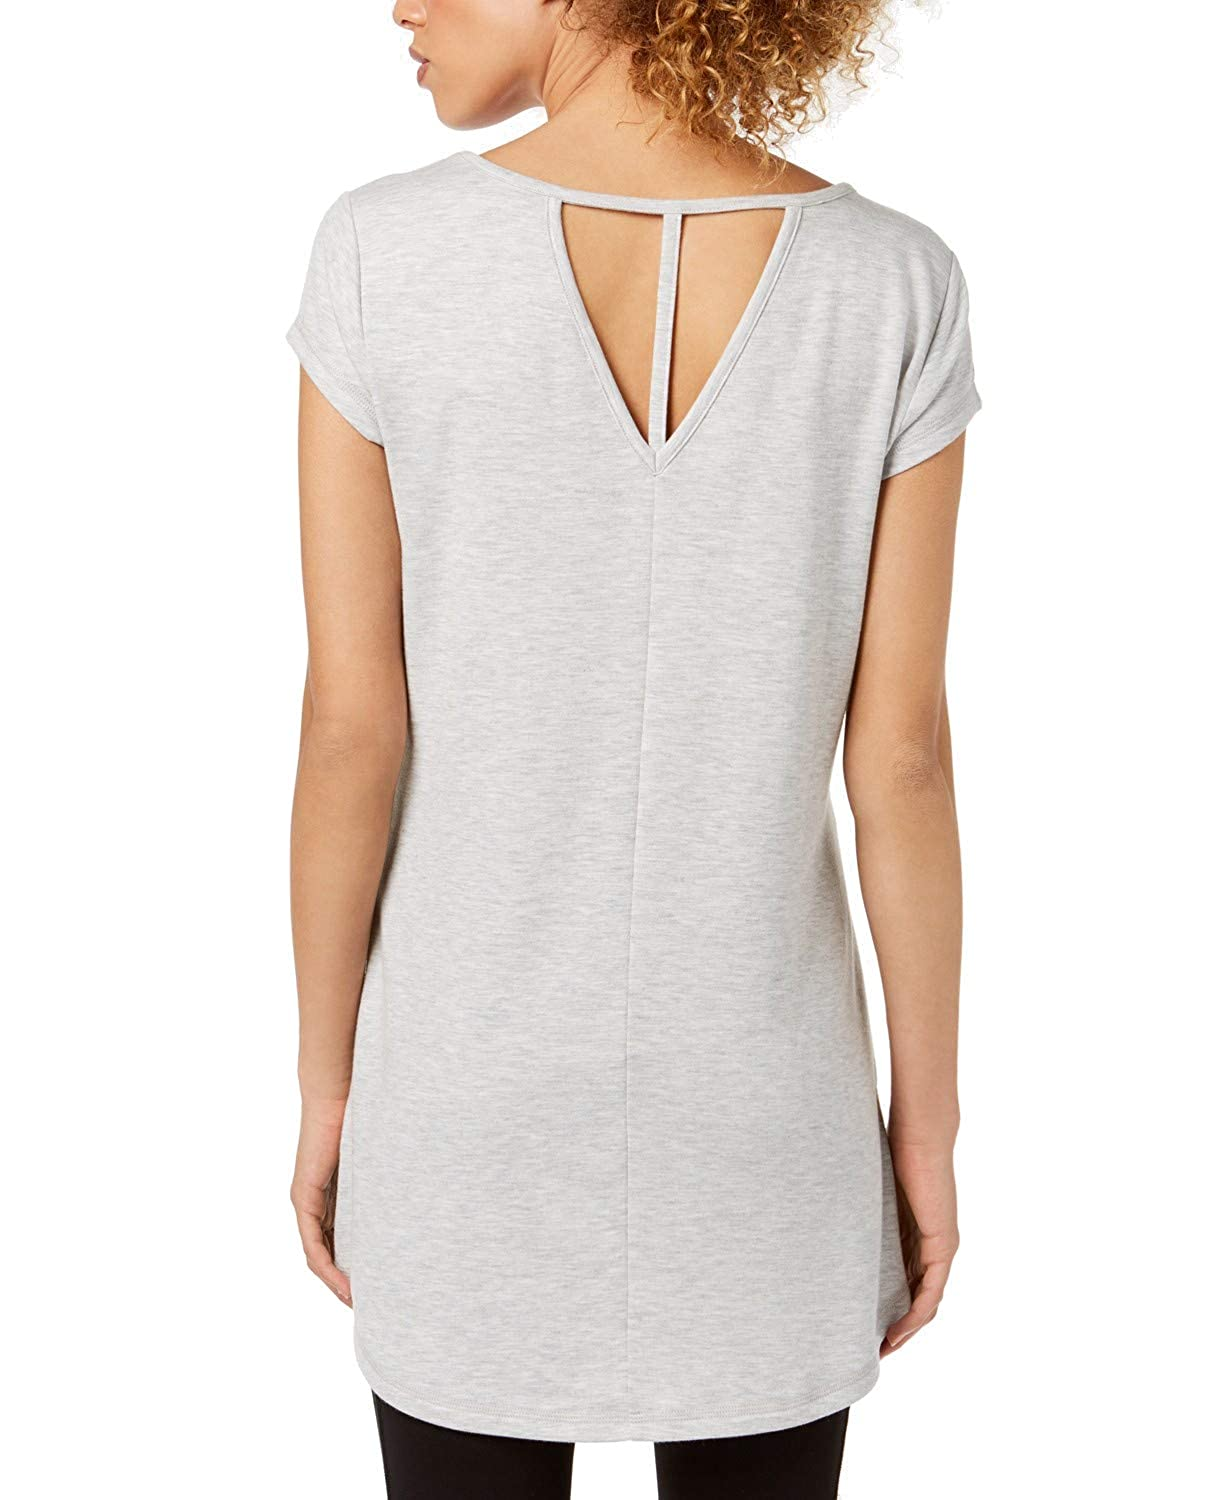 Ideology Womens Yoga Active Tunic Top 100022322